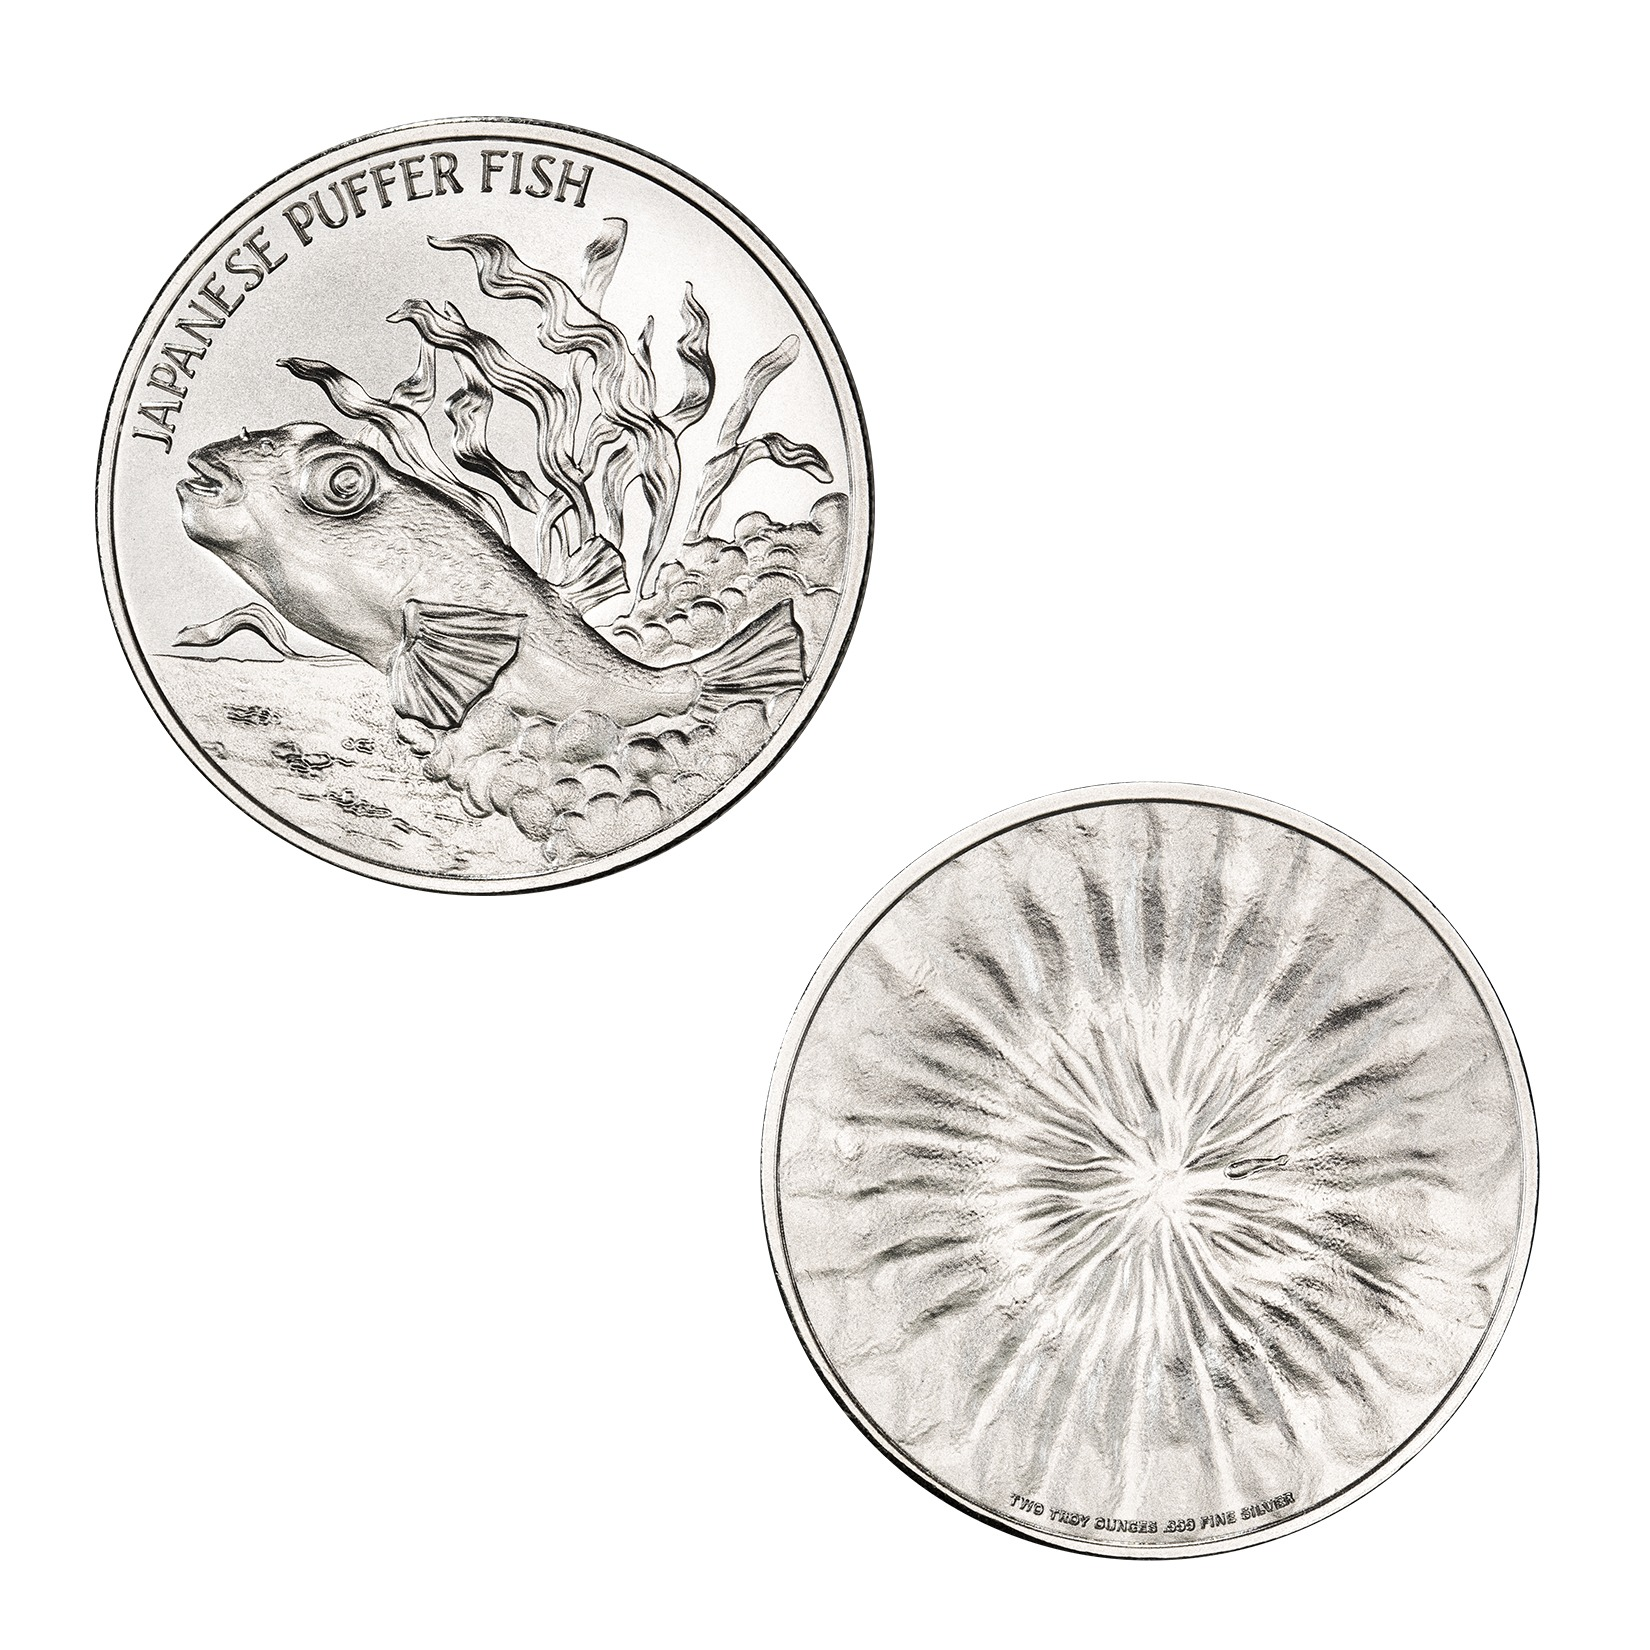 PUFFER FISH – 2 TROY OUNCE – 39MM